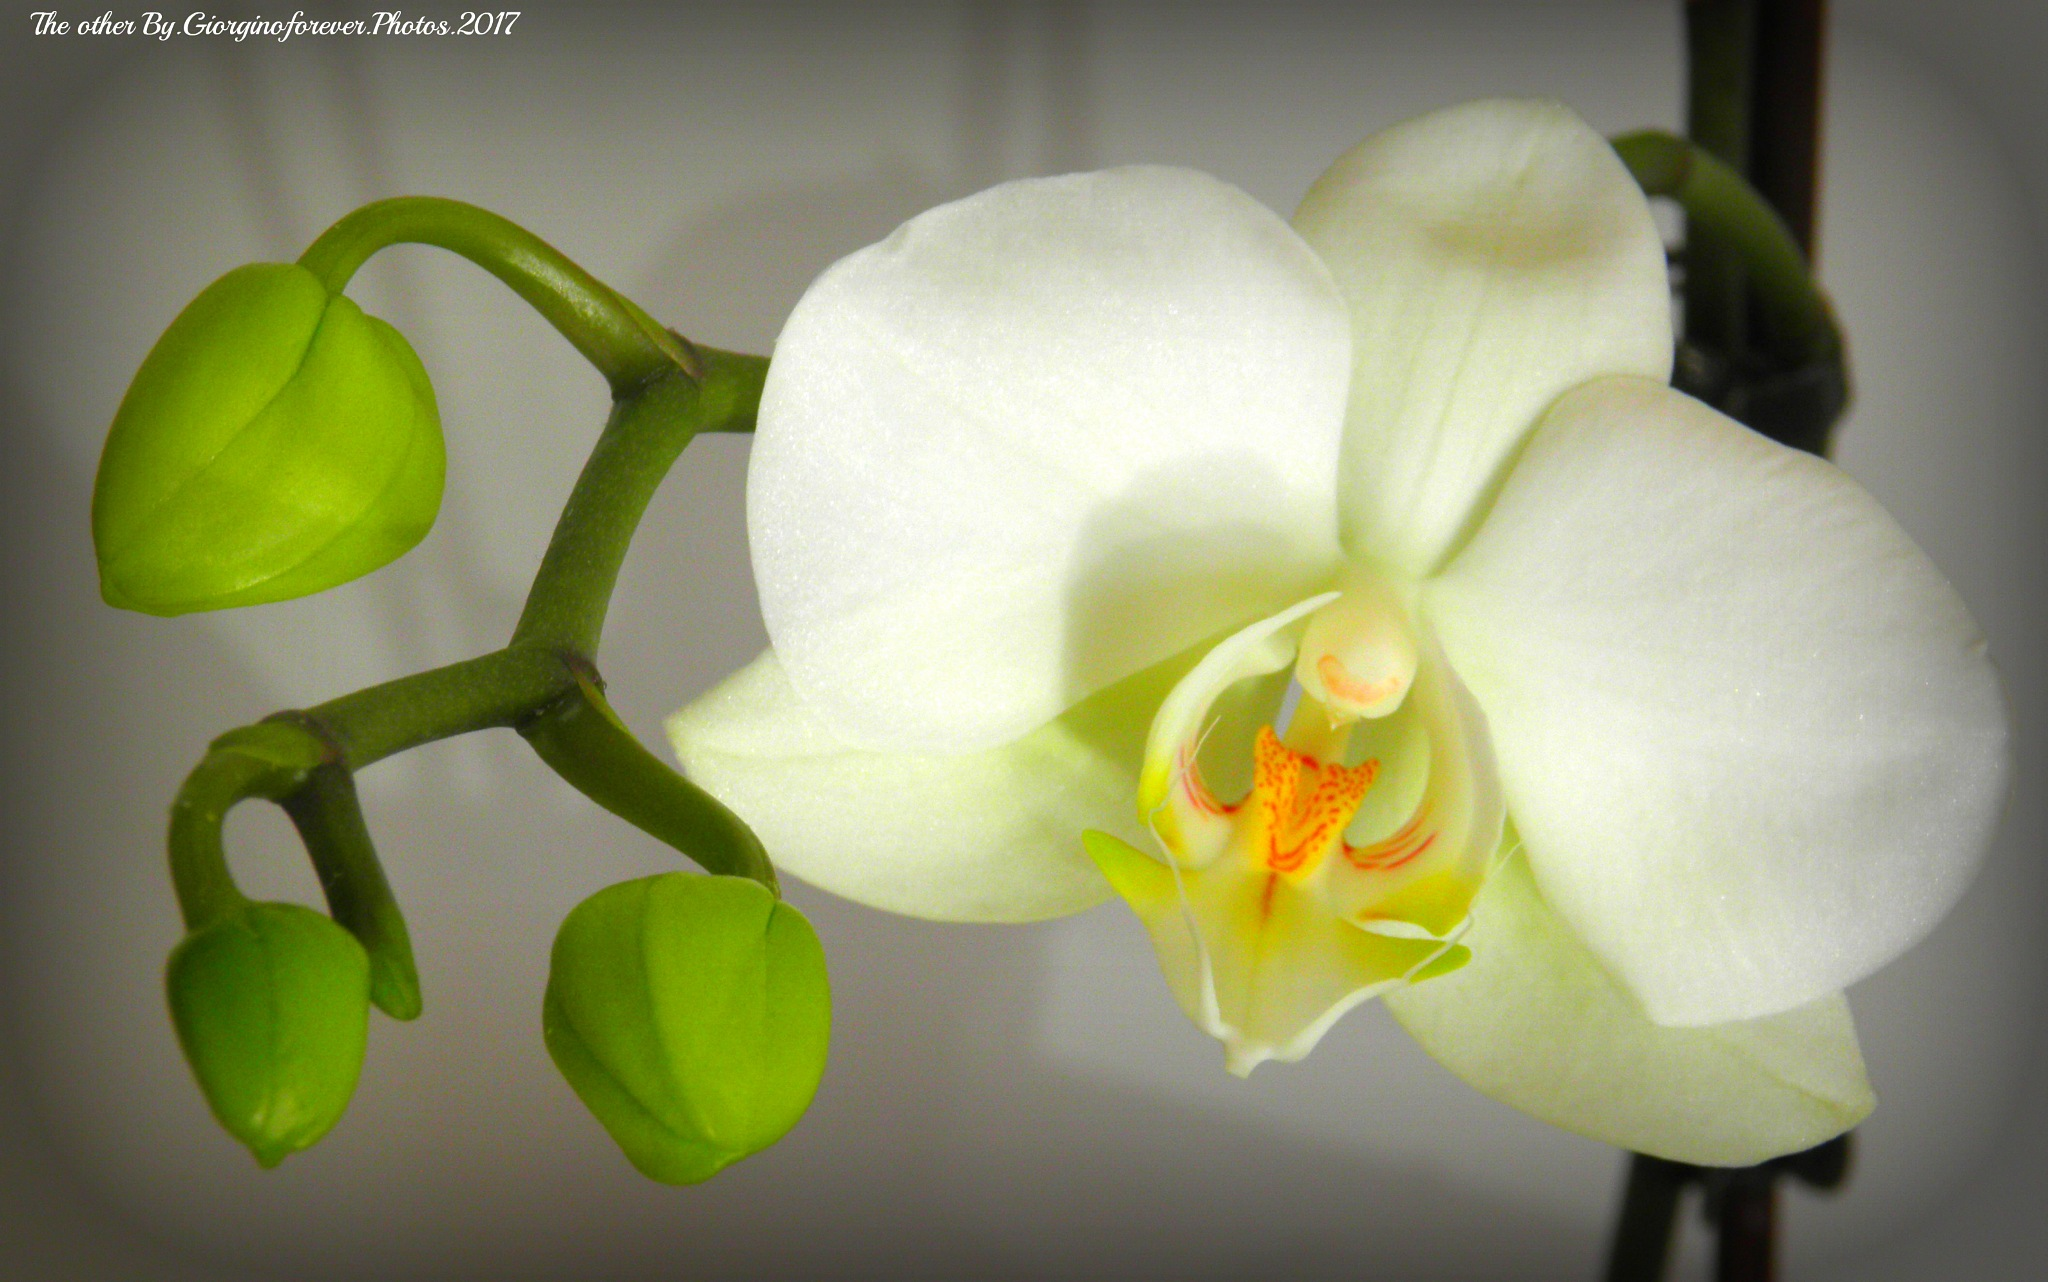 The other orchid back to life great xxx by karenanne.borsani